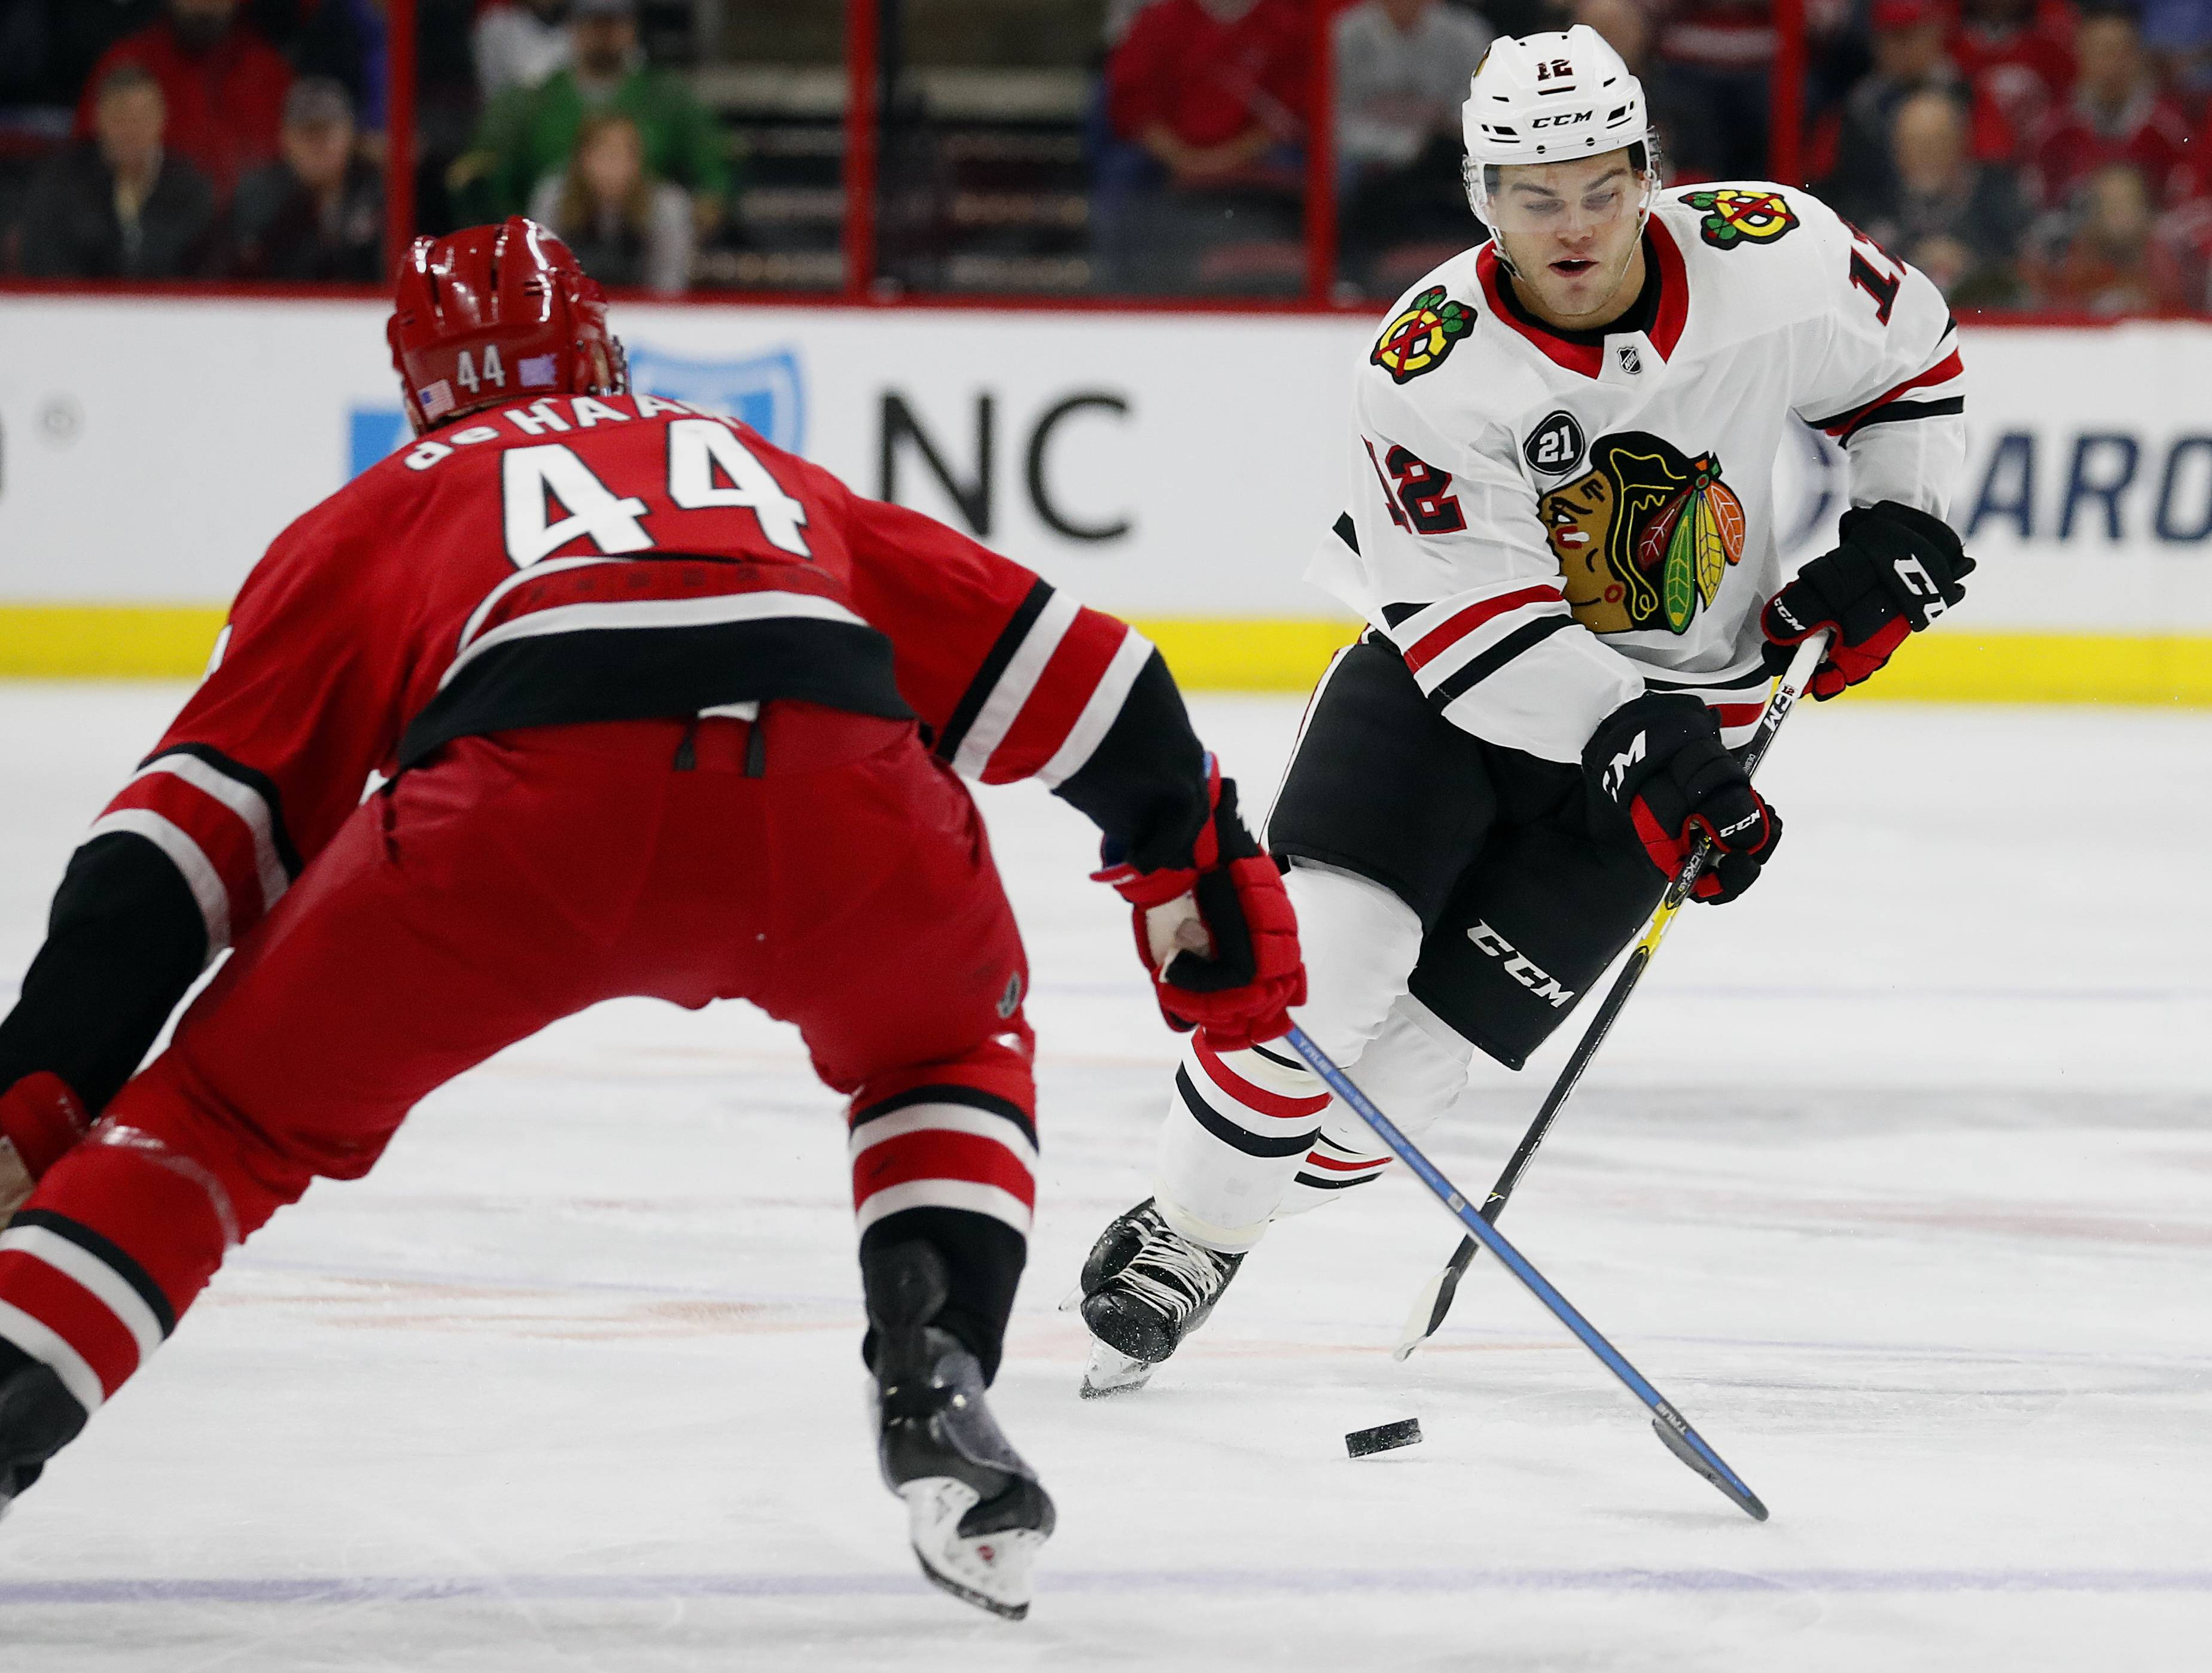 Chicago Blackhawks' Alex DeBrincat (12) moves the puck on Carolina Hurricanes' Calvin de Haan (44) during the first period of an NHL hockey game, Monday, Nov. 12, 2018, in Raleigh, N.C. (AP Photo/Karl B DeBlaker)